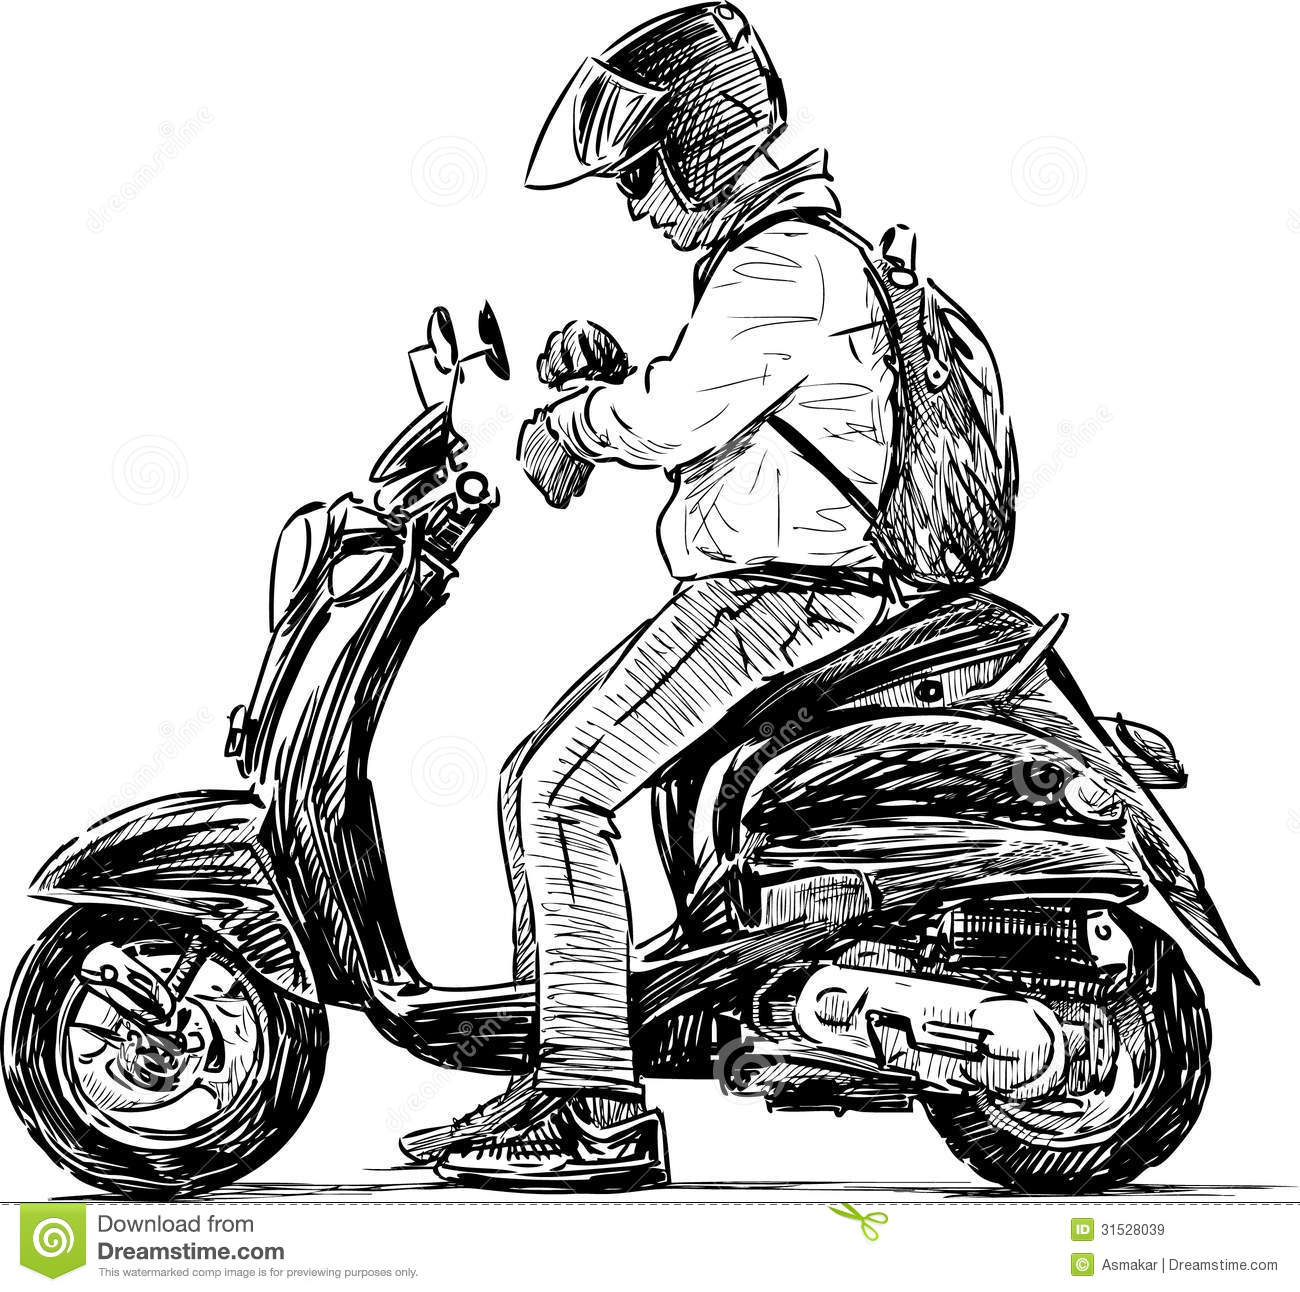 Royalty Free Stock Images Man Scooter Vector Image Riding Image31528039 additionally 5q8tp 2005 Impala Leaking Water Passanger Side Motor further Truck Coloring Pages in addition 1yt7x Horns Located 2008 Dodge Ram Looked together with 622745 Air Suspension Problems On Gx470 15. on engine driver